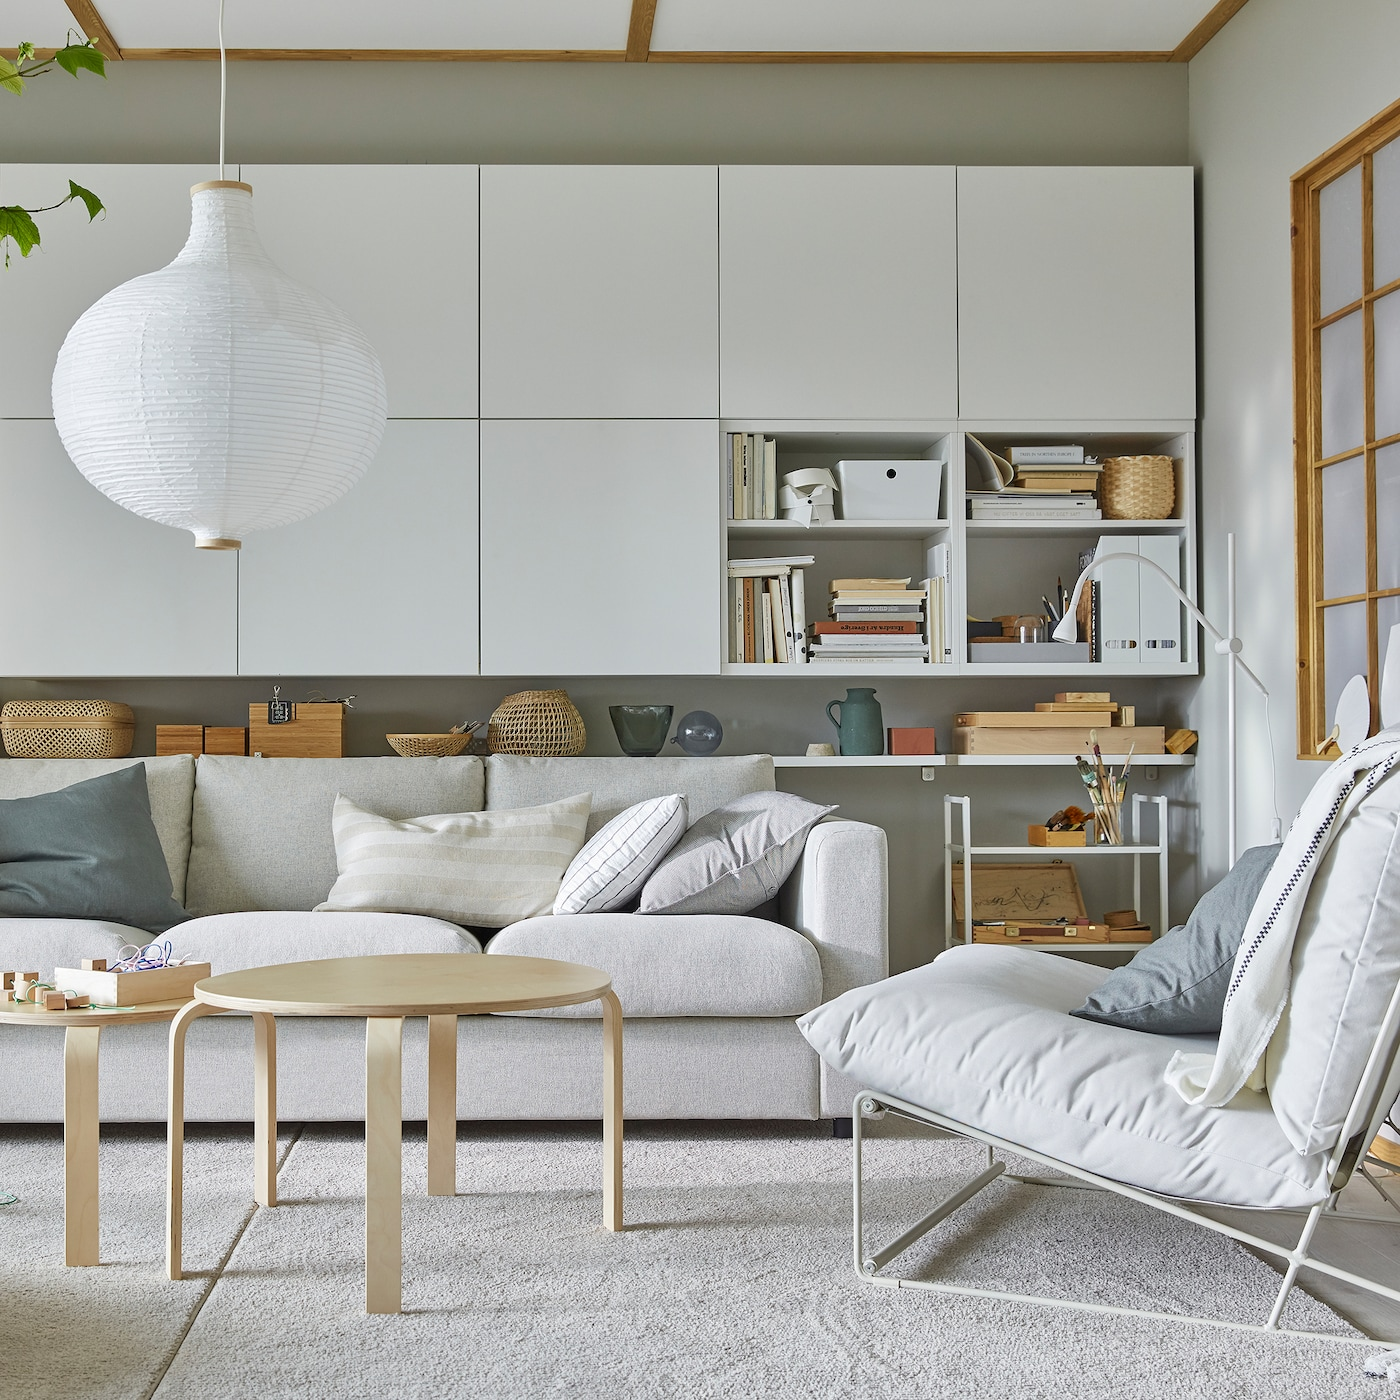 A bright living room with a HAVSTA easy chair, many white wall-mounted cabinets and a round, white pendant lamp.